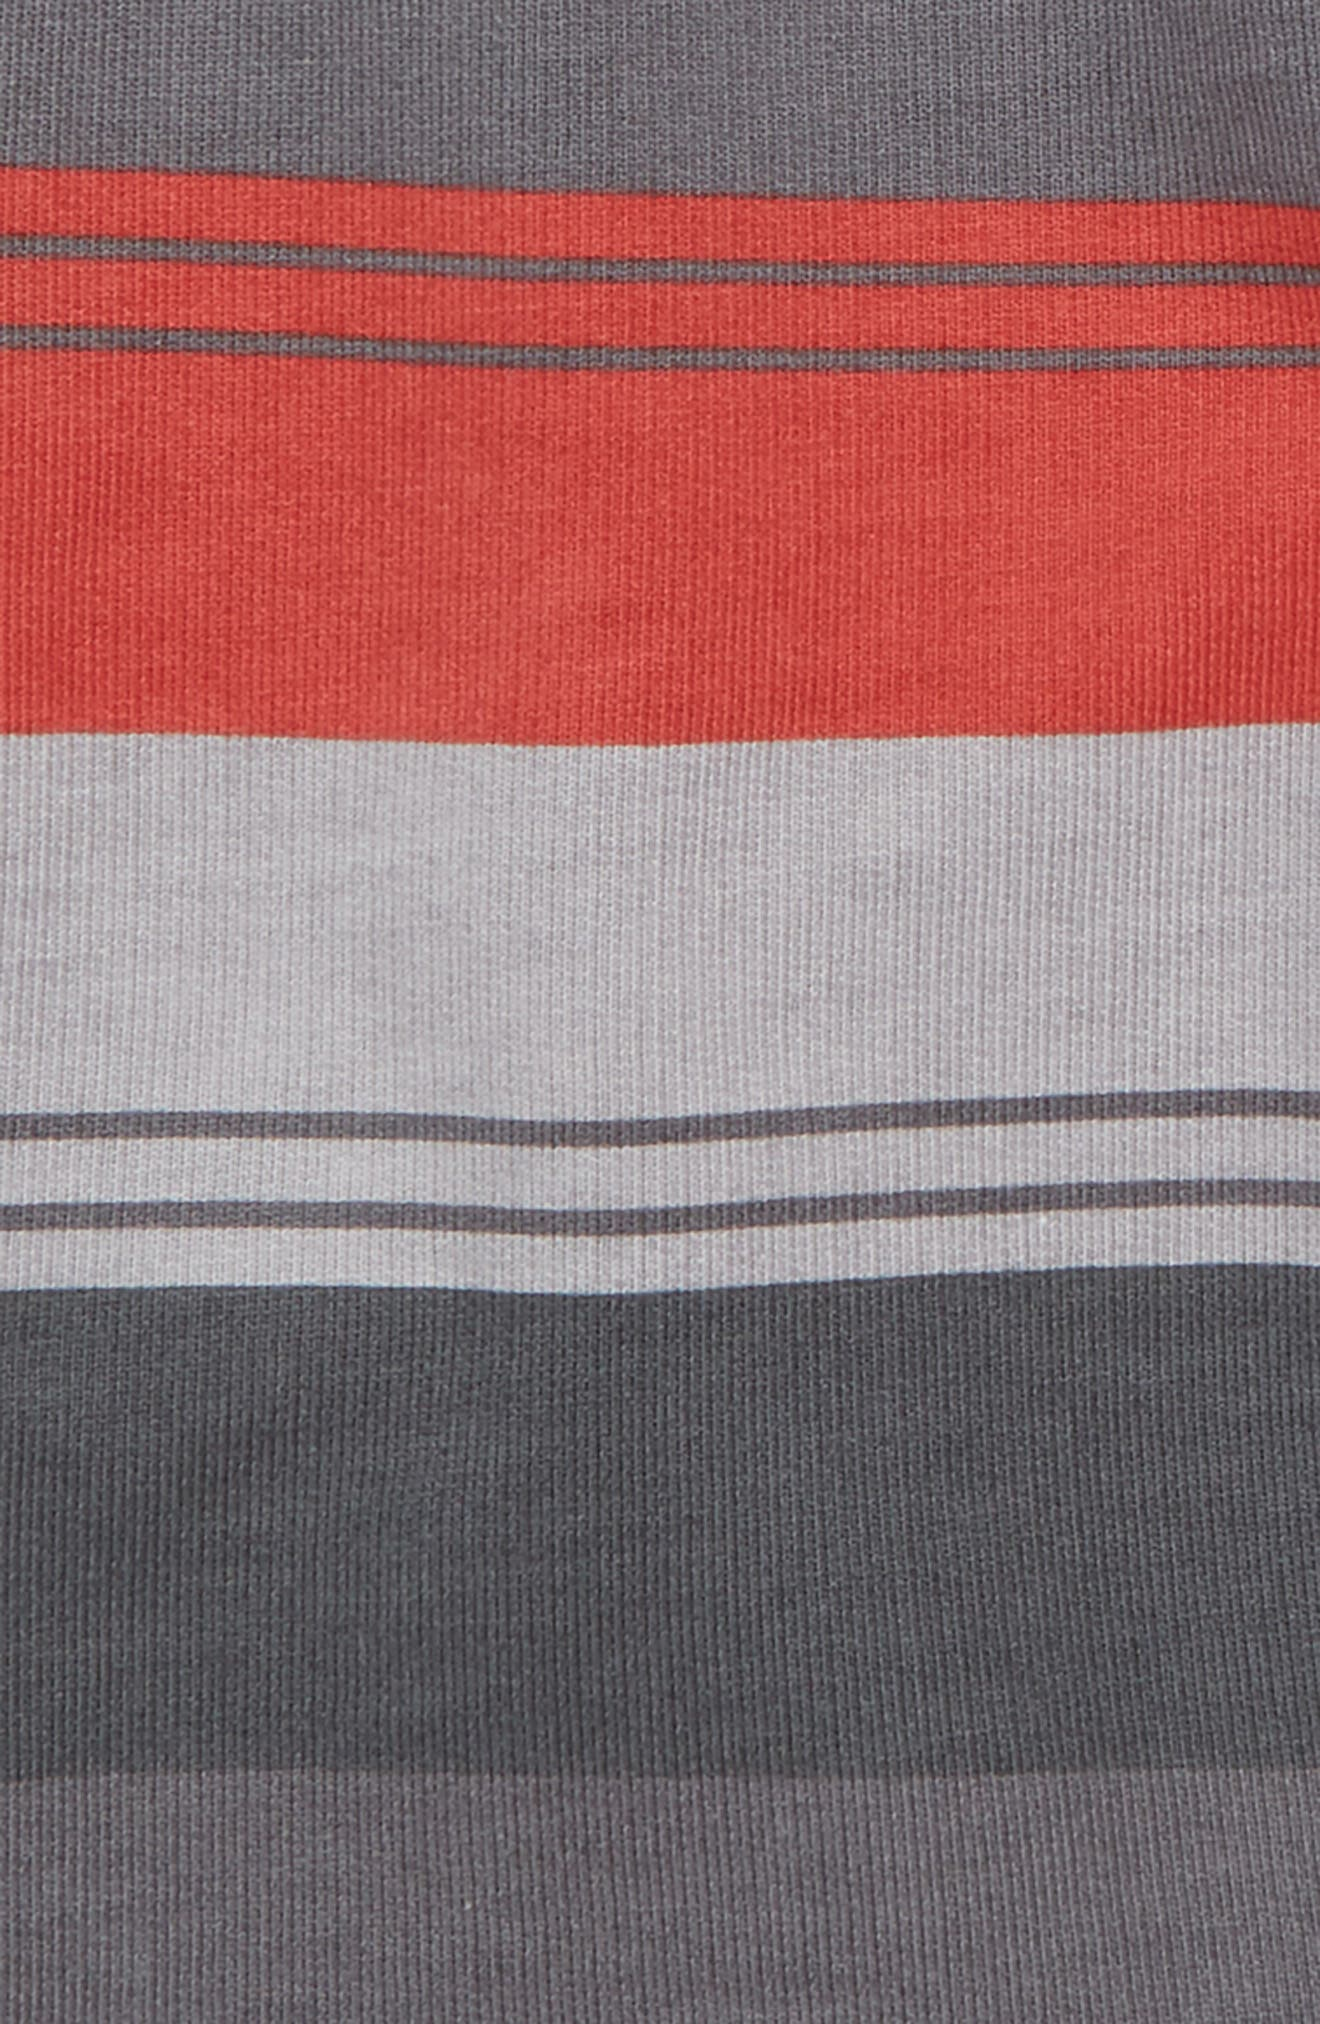 Stripe Cruiser Shorts,                             Alternate thumbnail 2, color,                             023